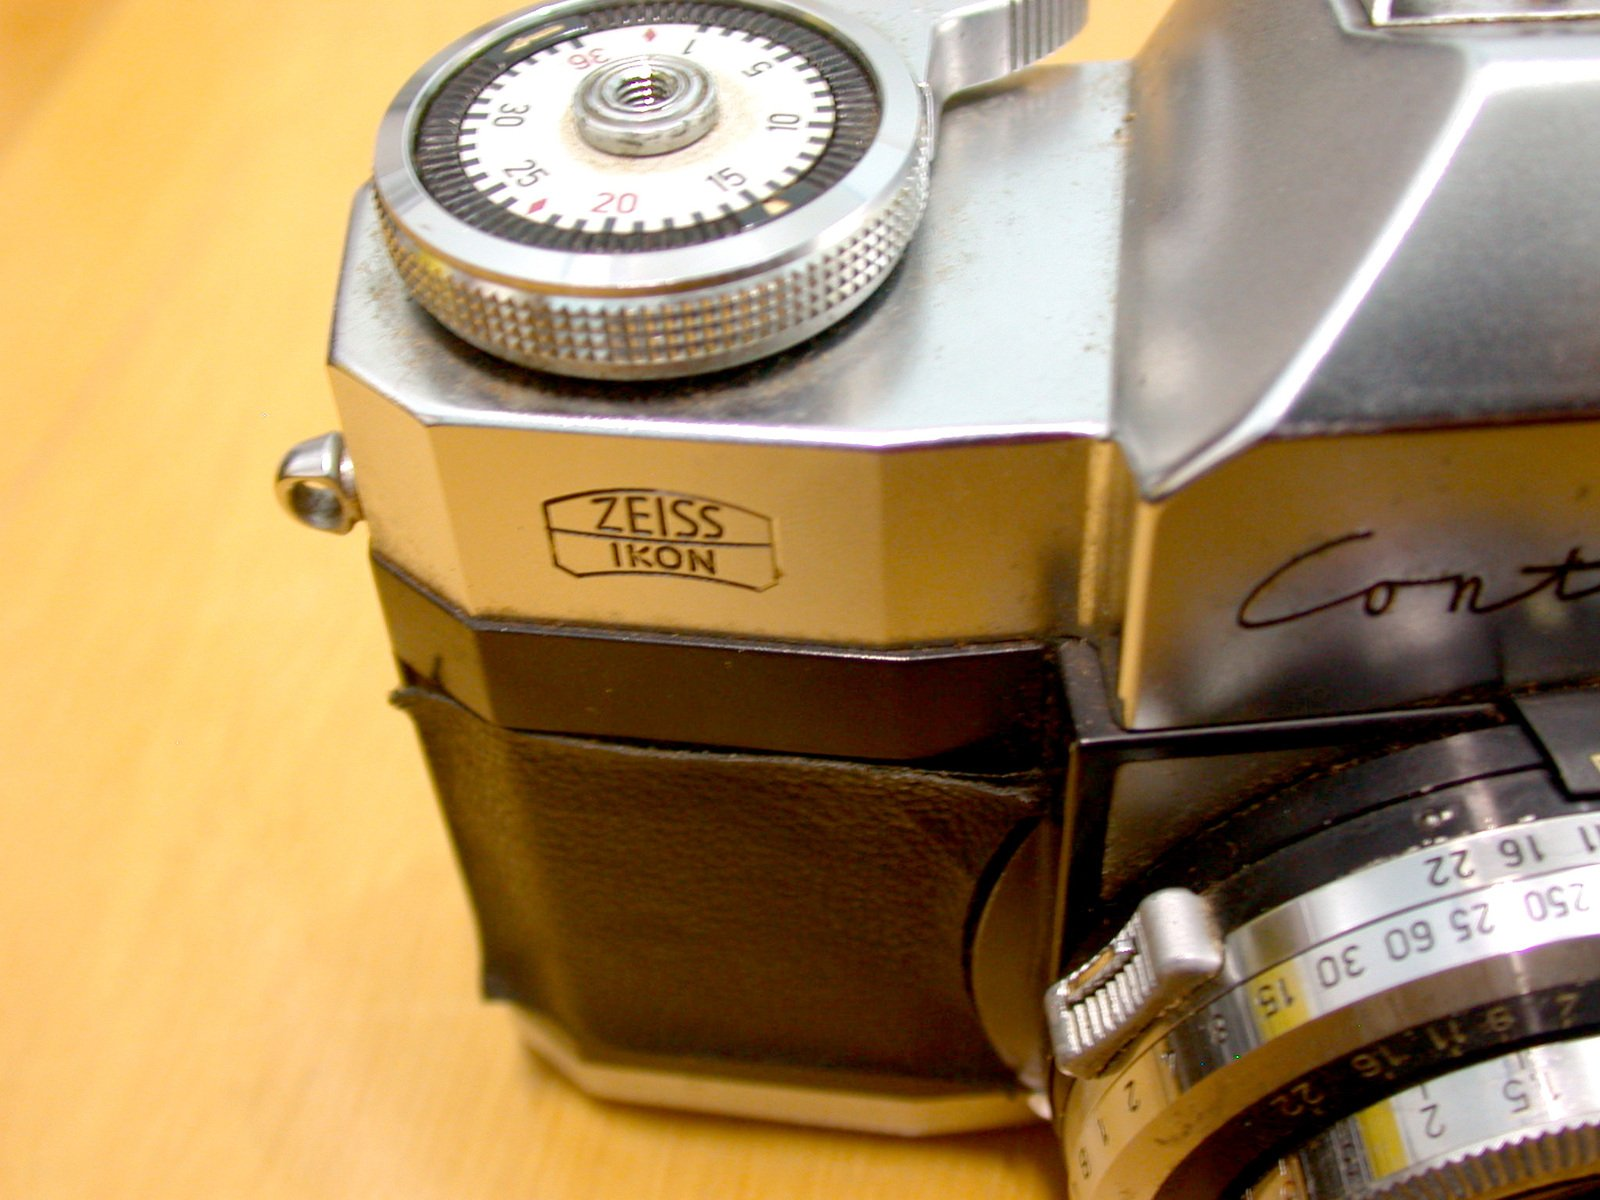 Free Zeiss Ikon - Contaflex 5 Stock Photo - FreeImages com